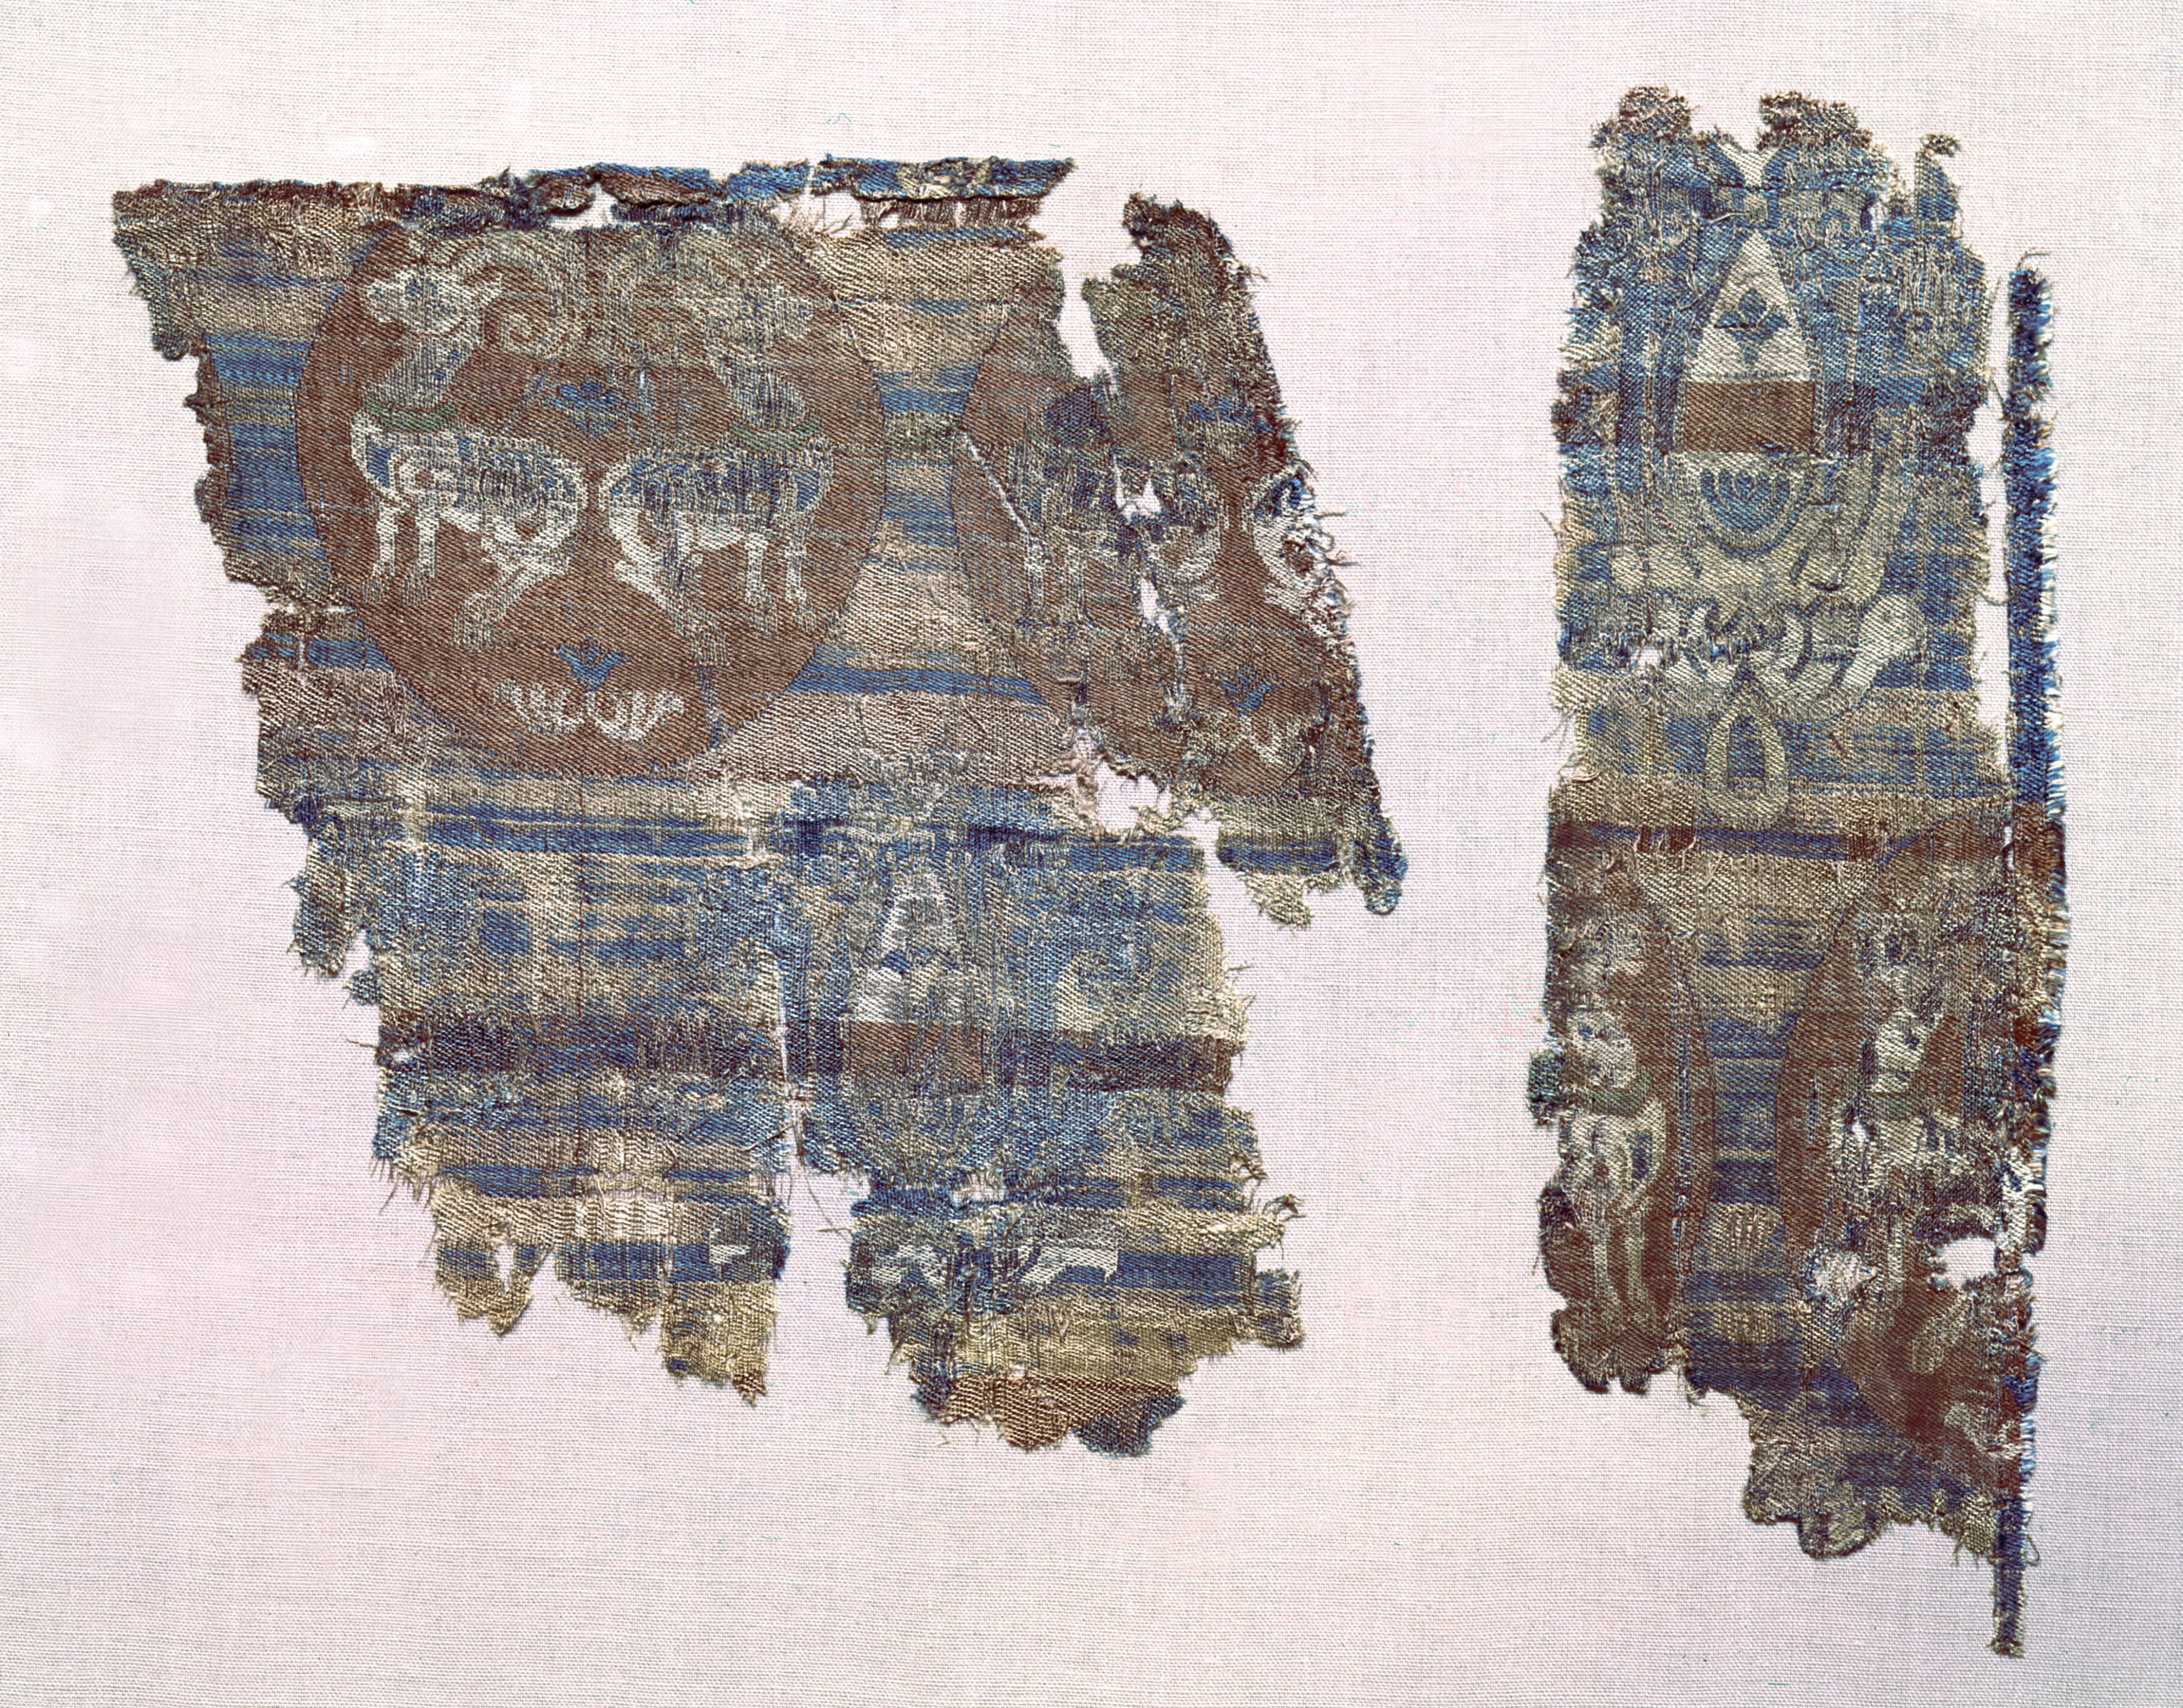 Early Byzantine textile fragments with ibexes